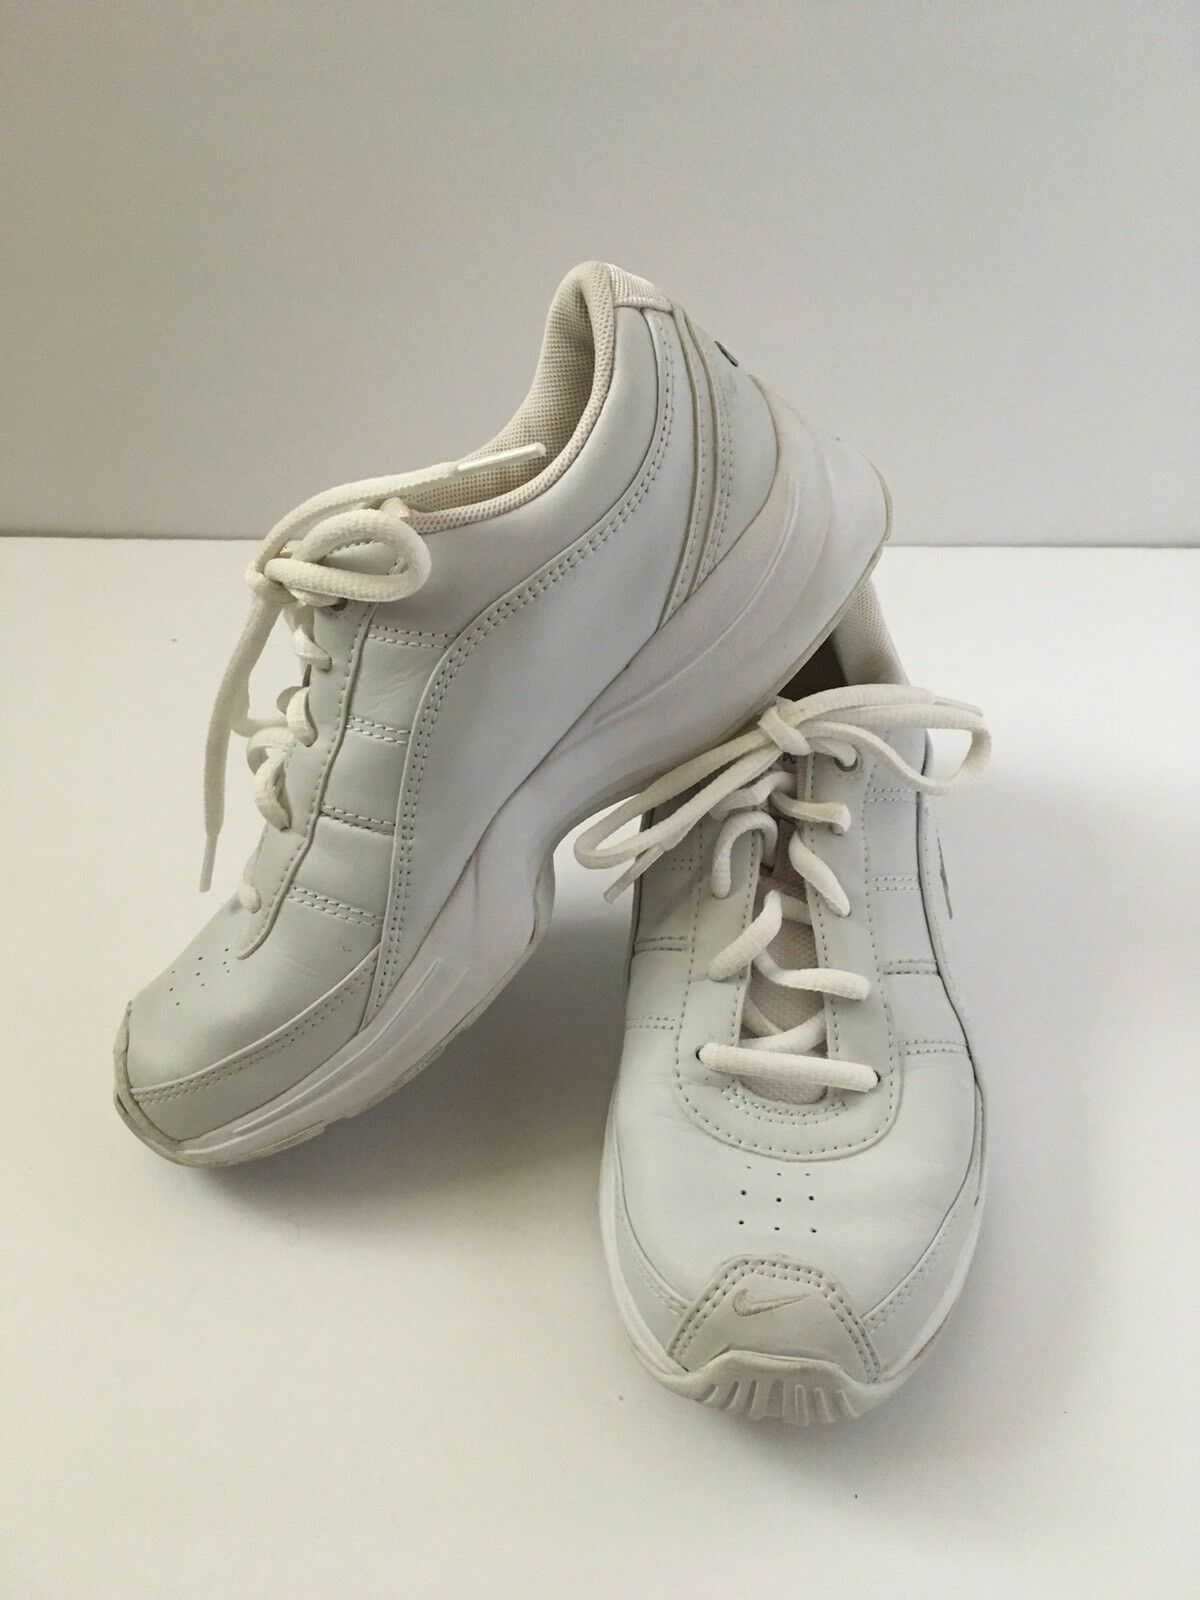 Nike Women White Gray Leather Energy Cheer Cheerleading Shoes 6 Athletic 310906 Wild casual shoes